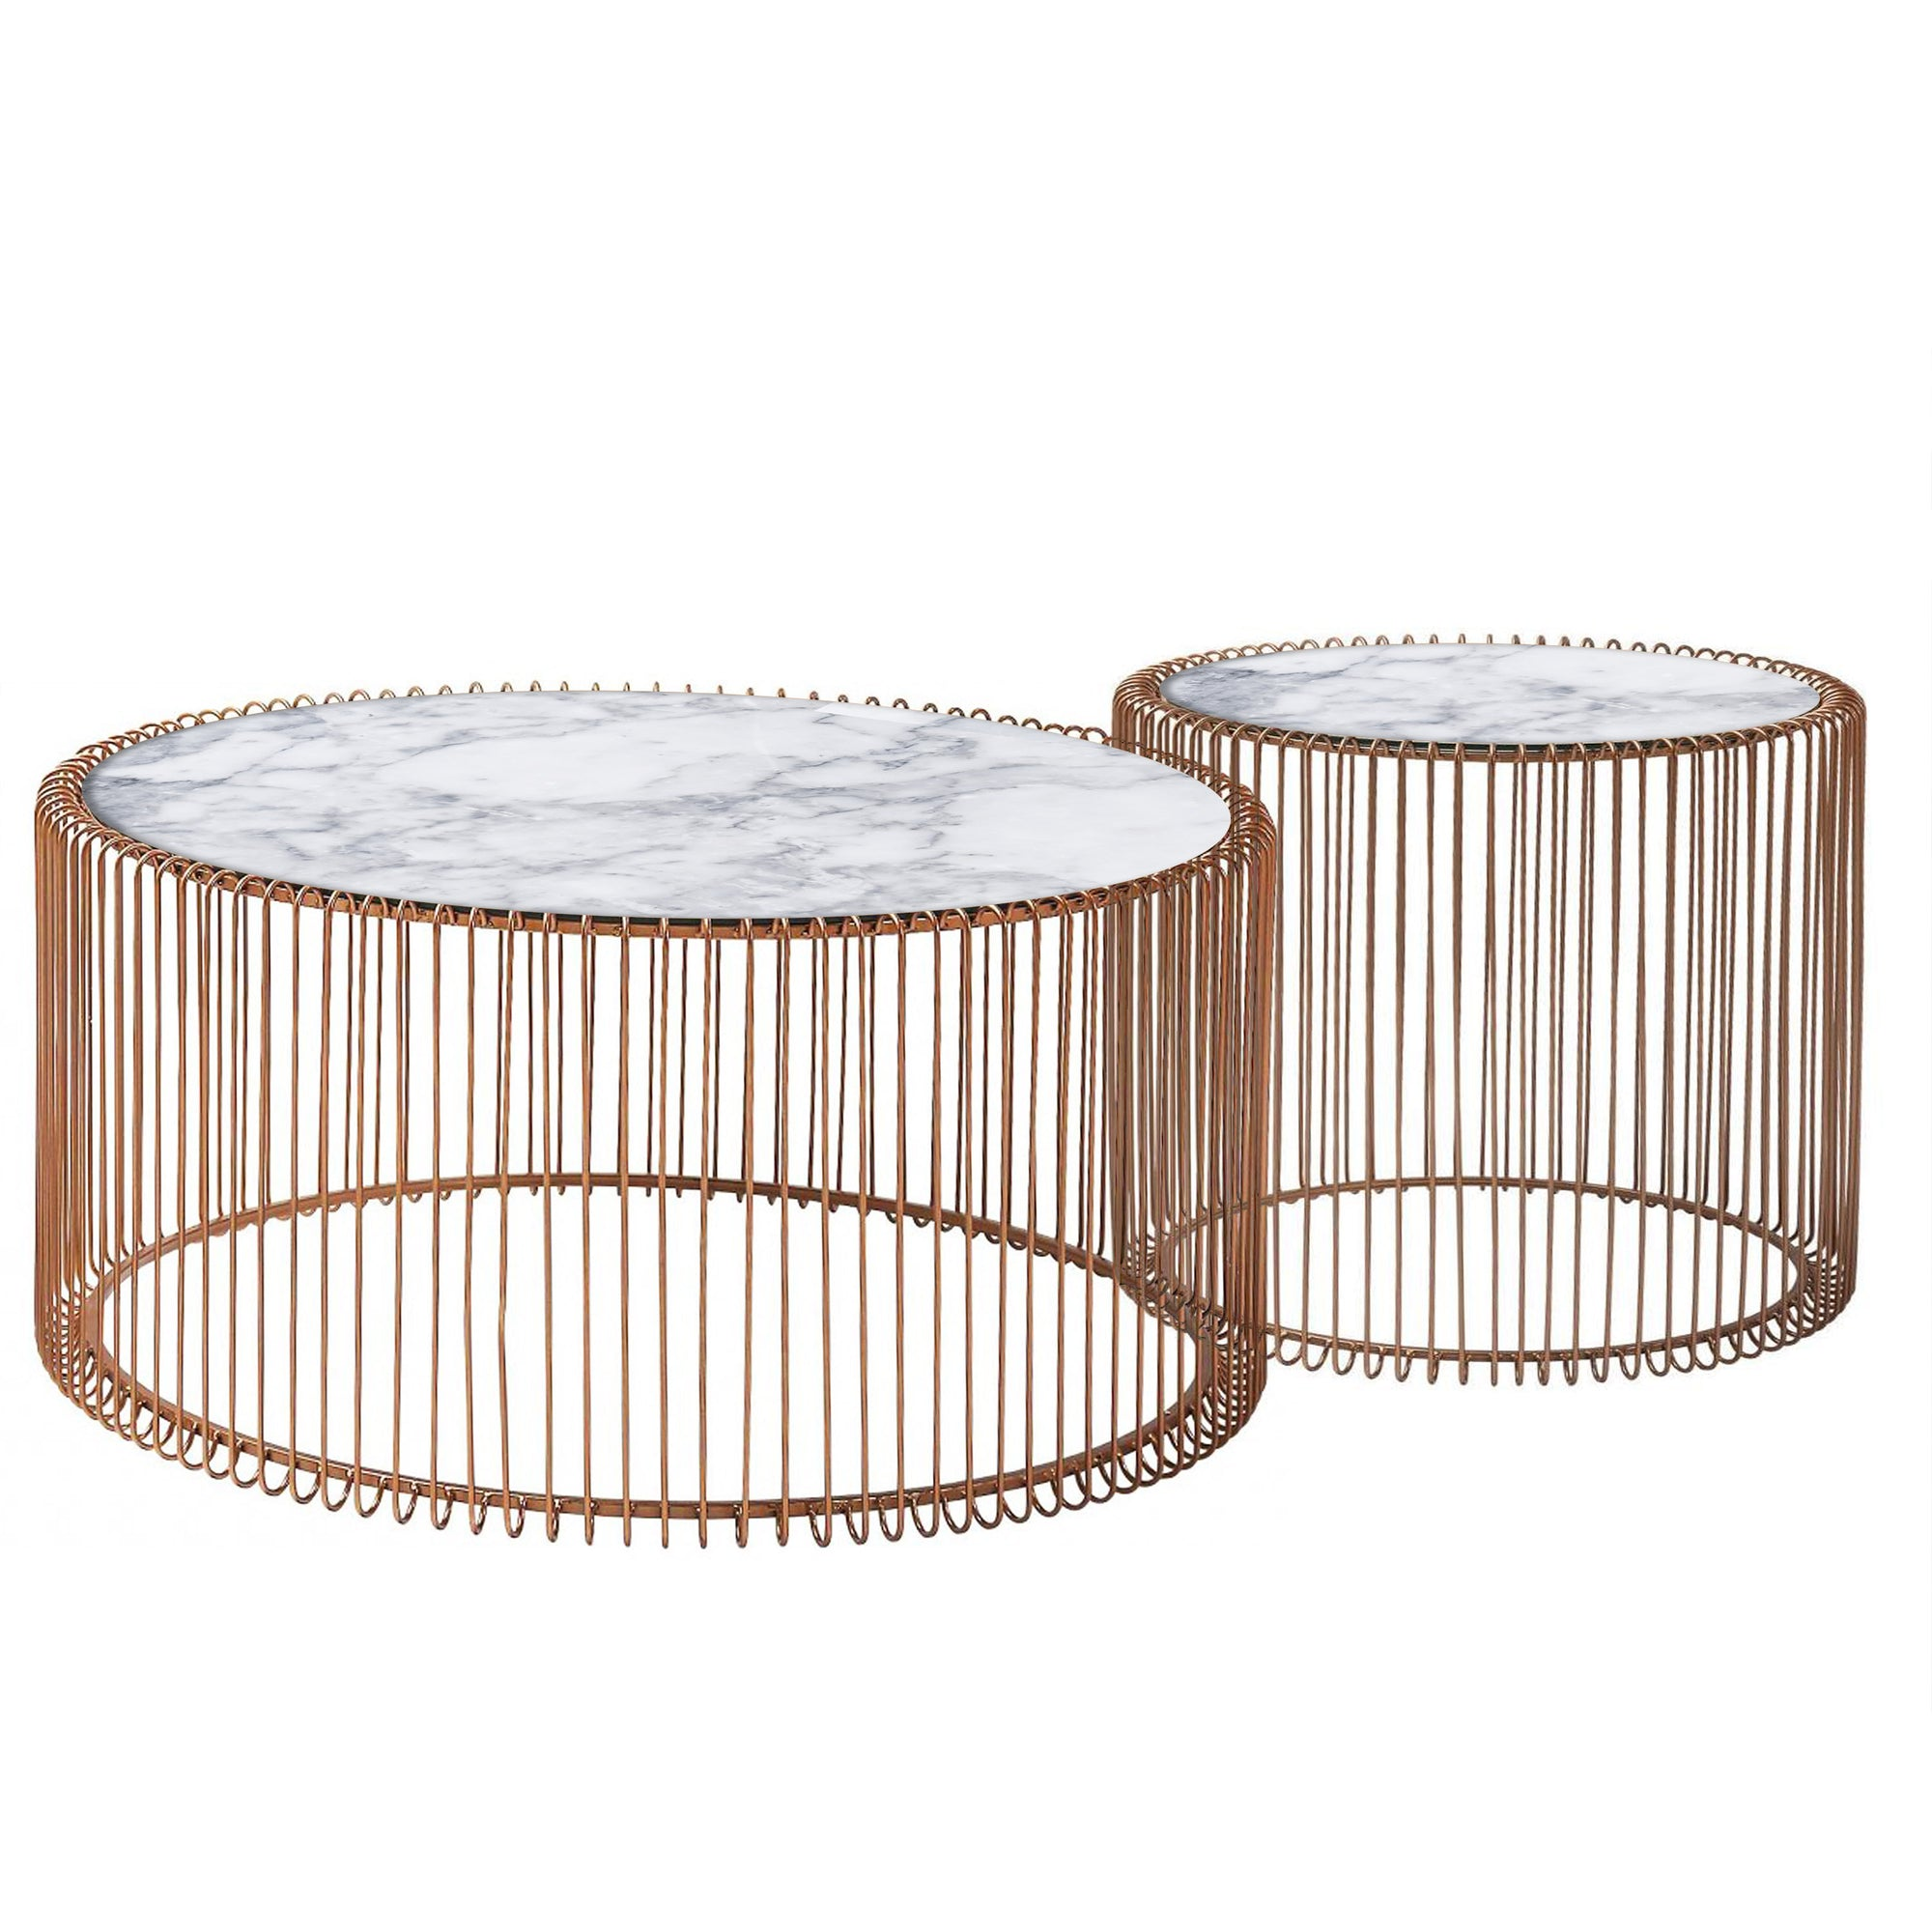 Set of 2 Natural Marble & Stainless Steel Table BP8808 RG -  طقم من 2 طاولة رخام طبيعي وستانلس ستيل - Shop Online Furniture and Home Decor Store in Dubai, UAE at ebarza